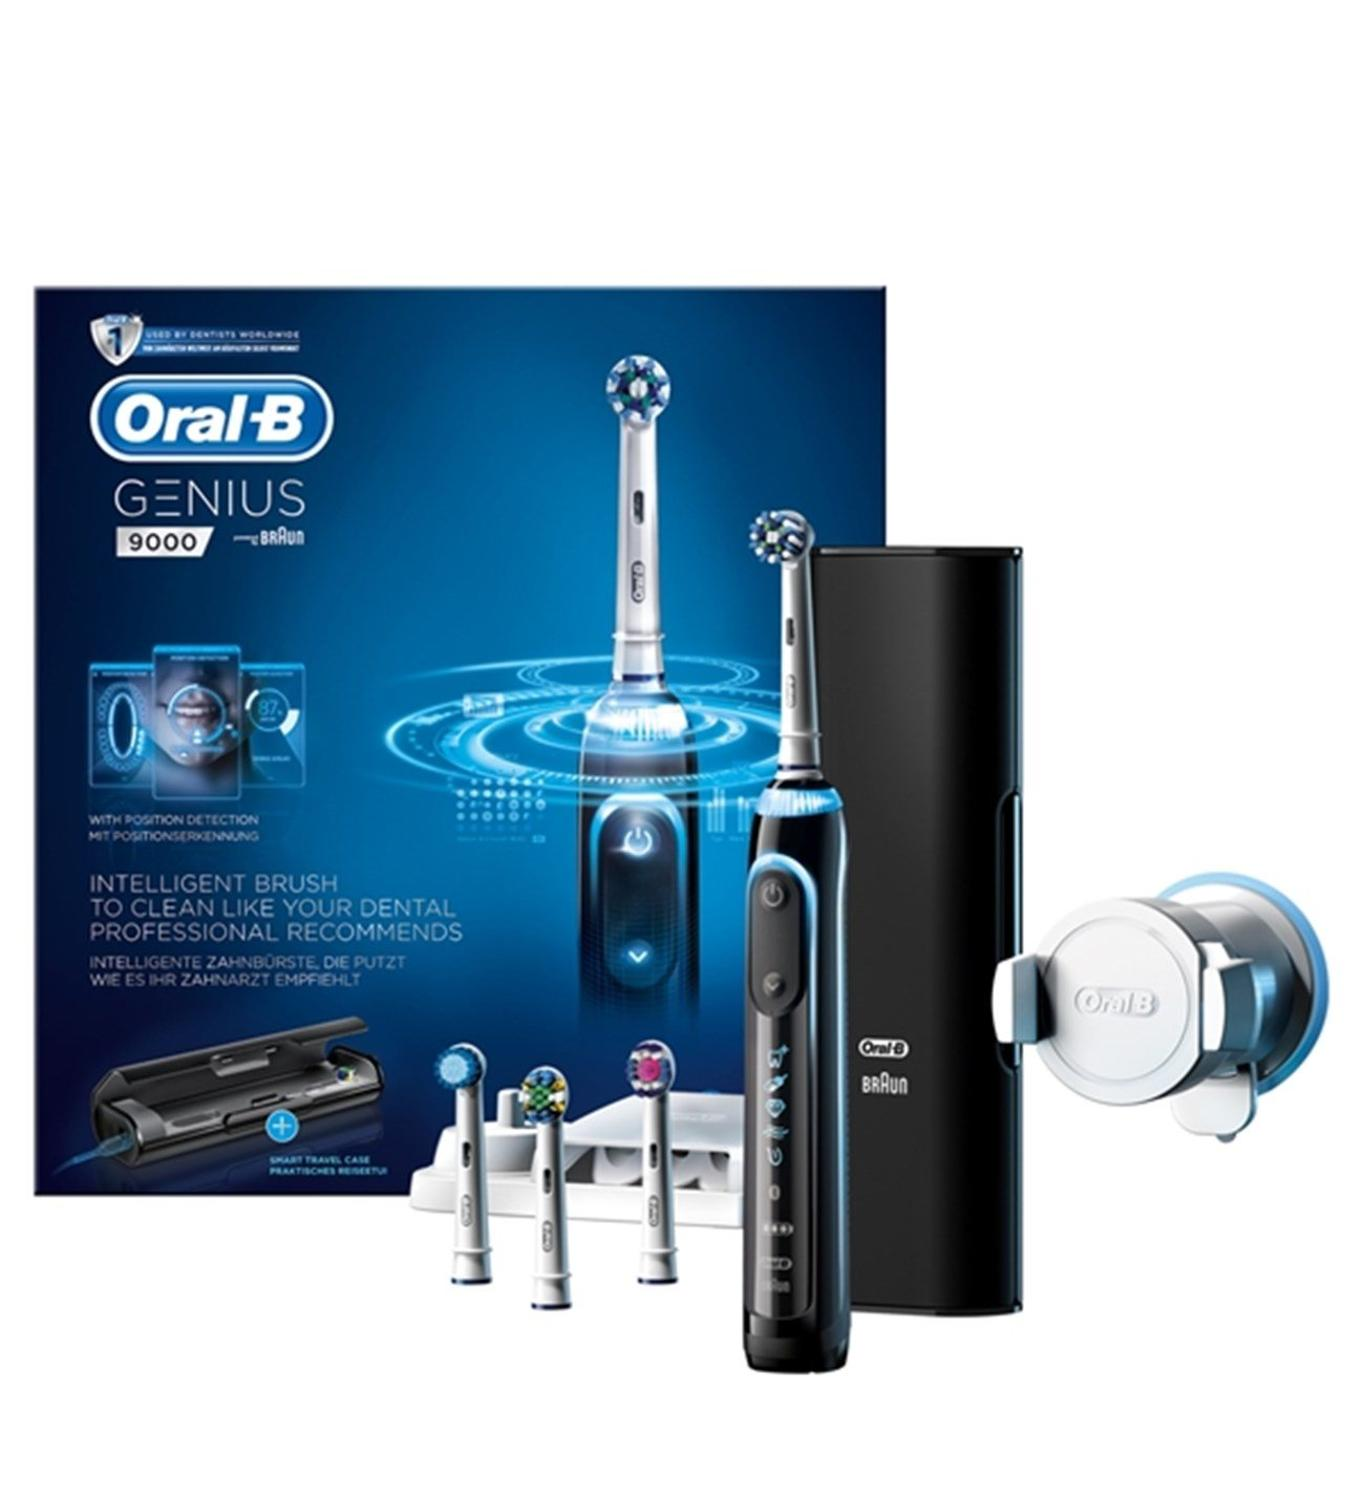 ORAL-B GENIUS 9000 Electric Toothbrush Braun NEW IN THE BOX  EU PLUG 220-240V